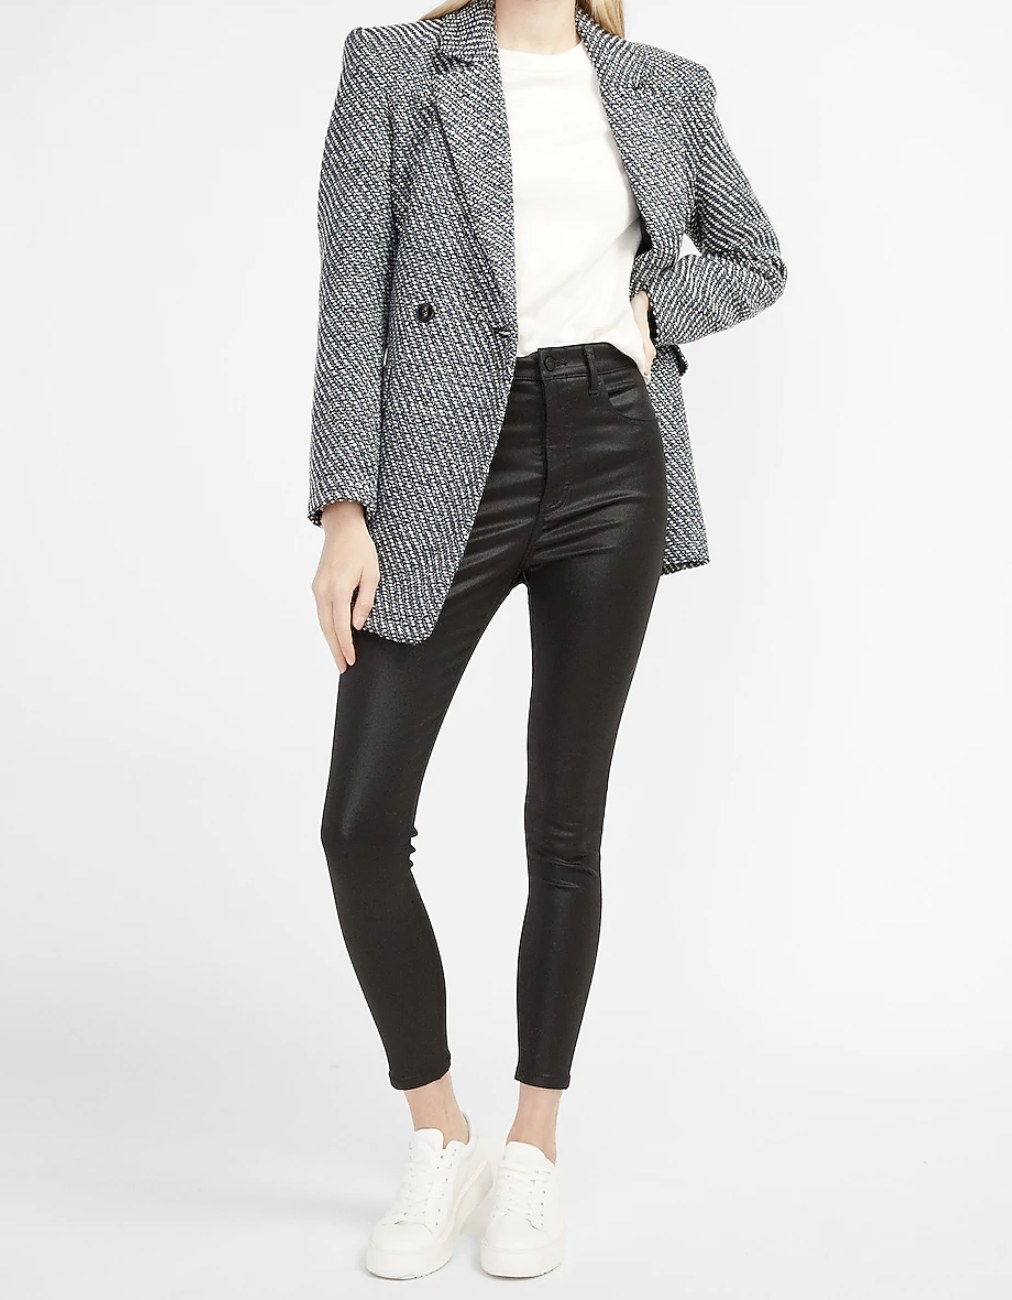 a black and white metallic blazer coat styled with a white t-shirt, leggings, and sneakers